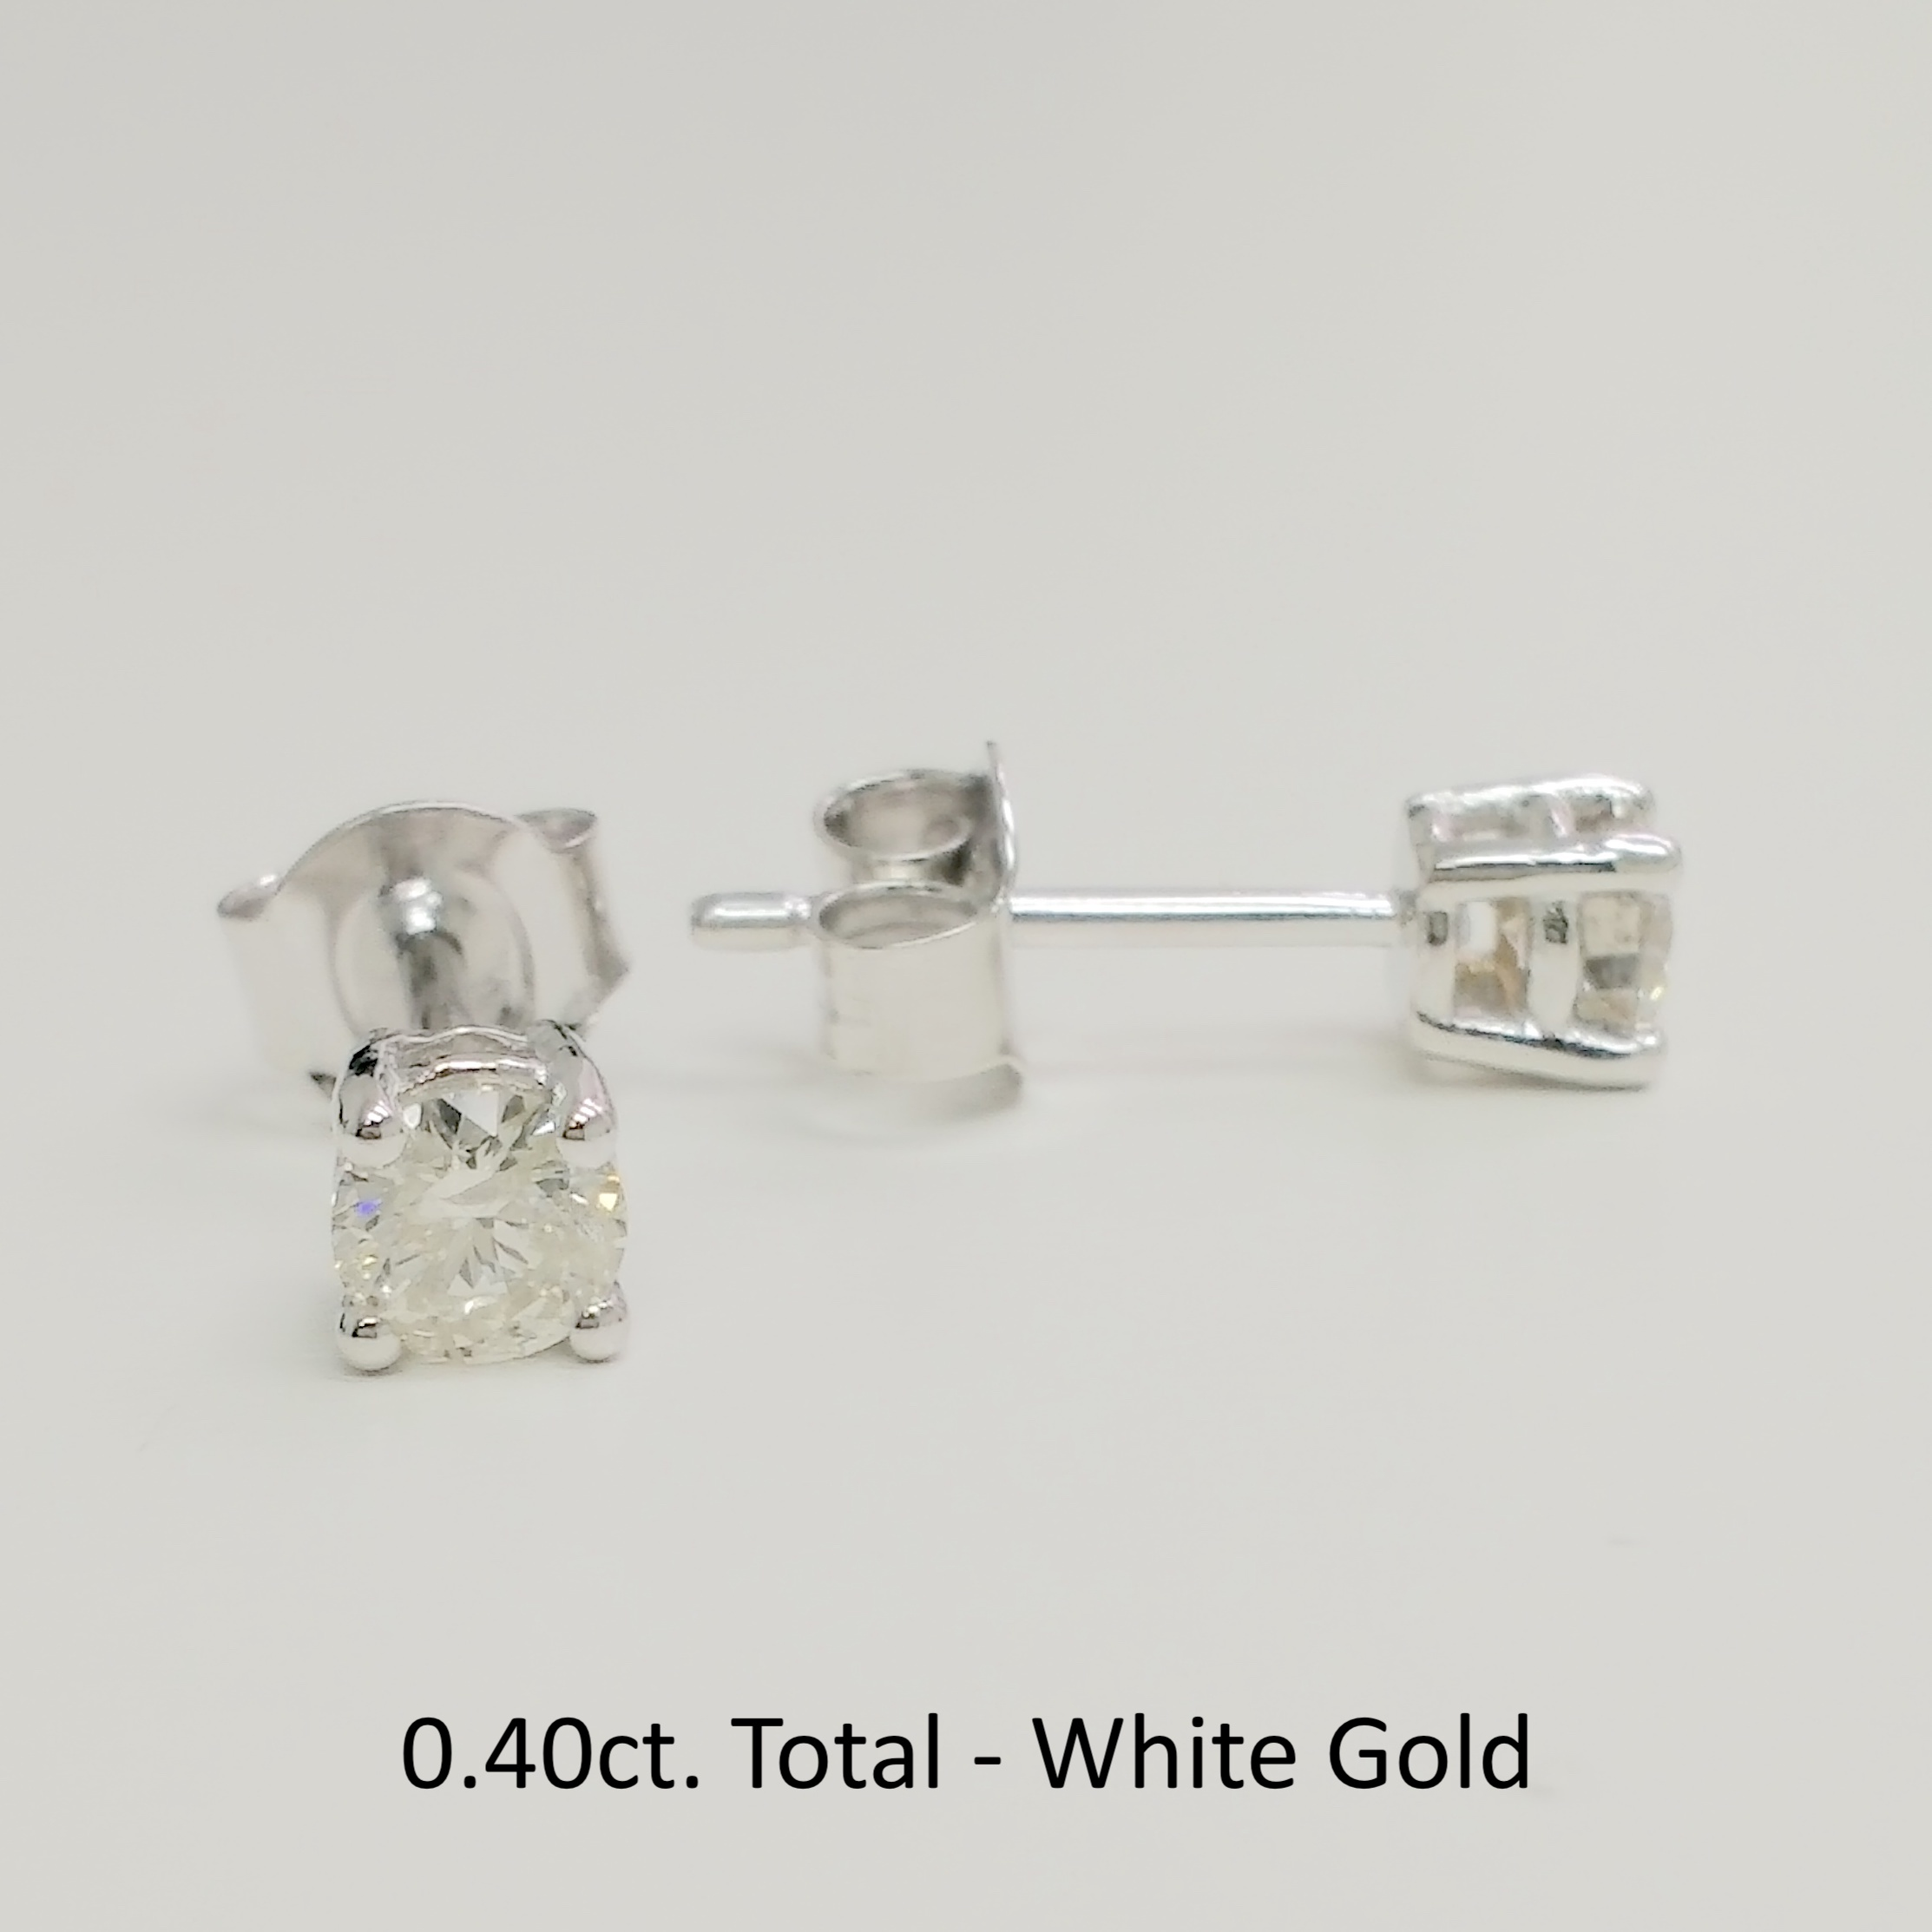 0.40Ct Total